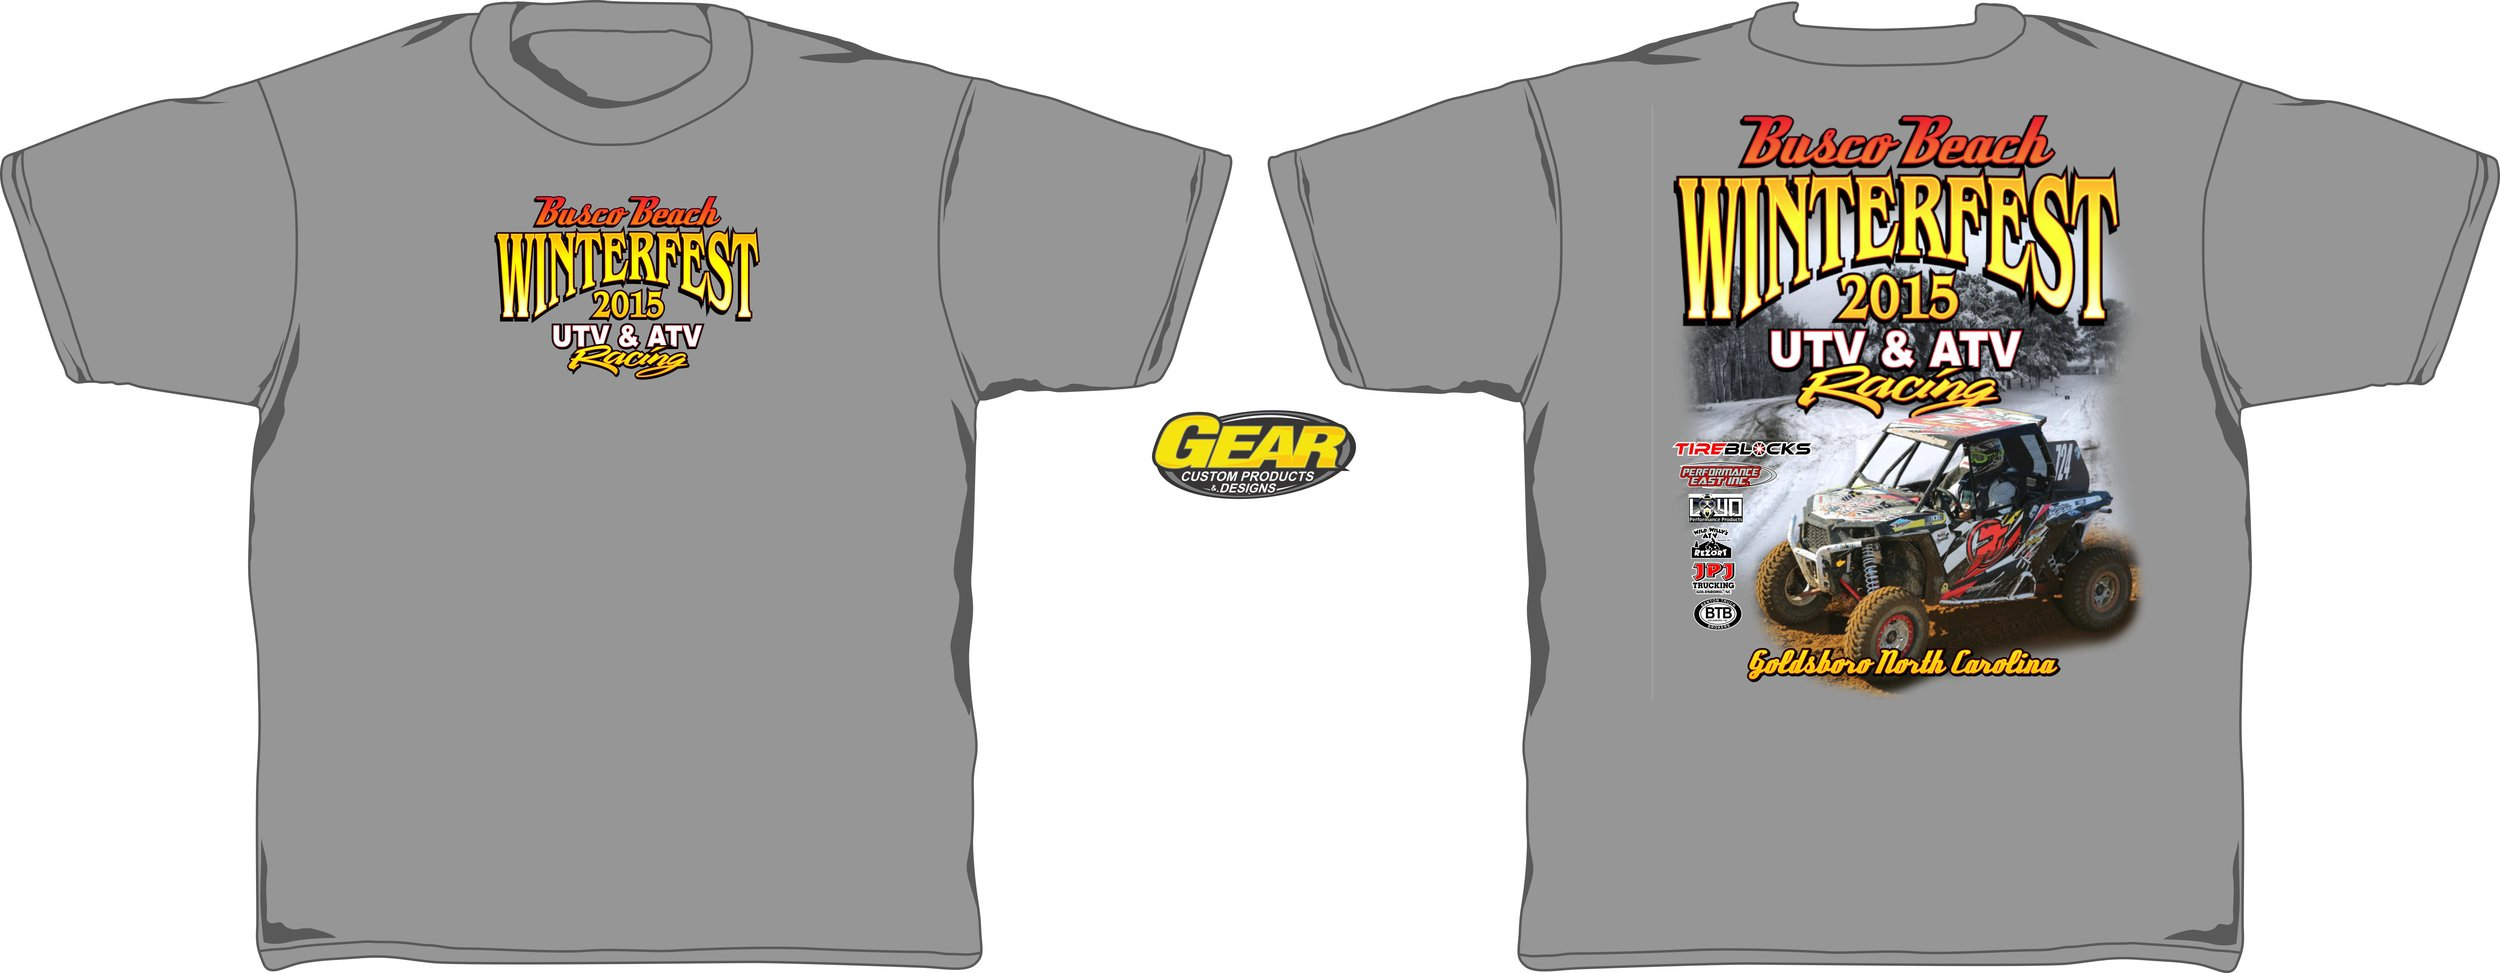 Click now to order Winterfest 2015 shirts just $10!!